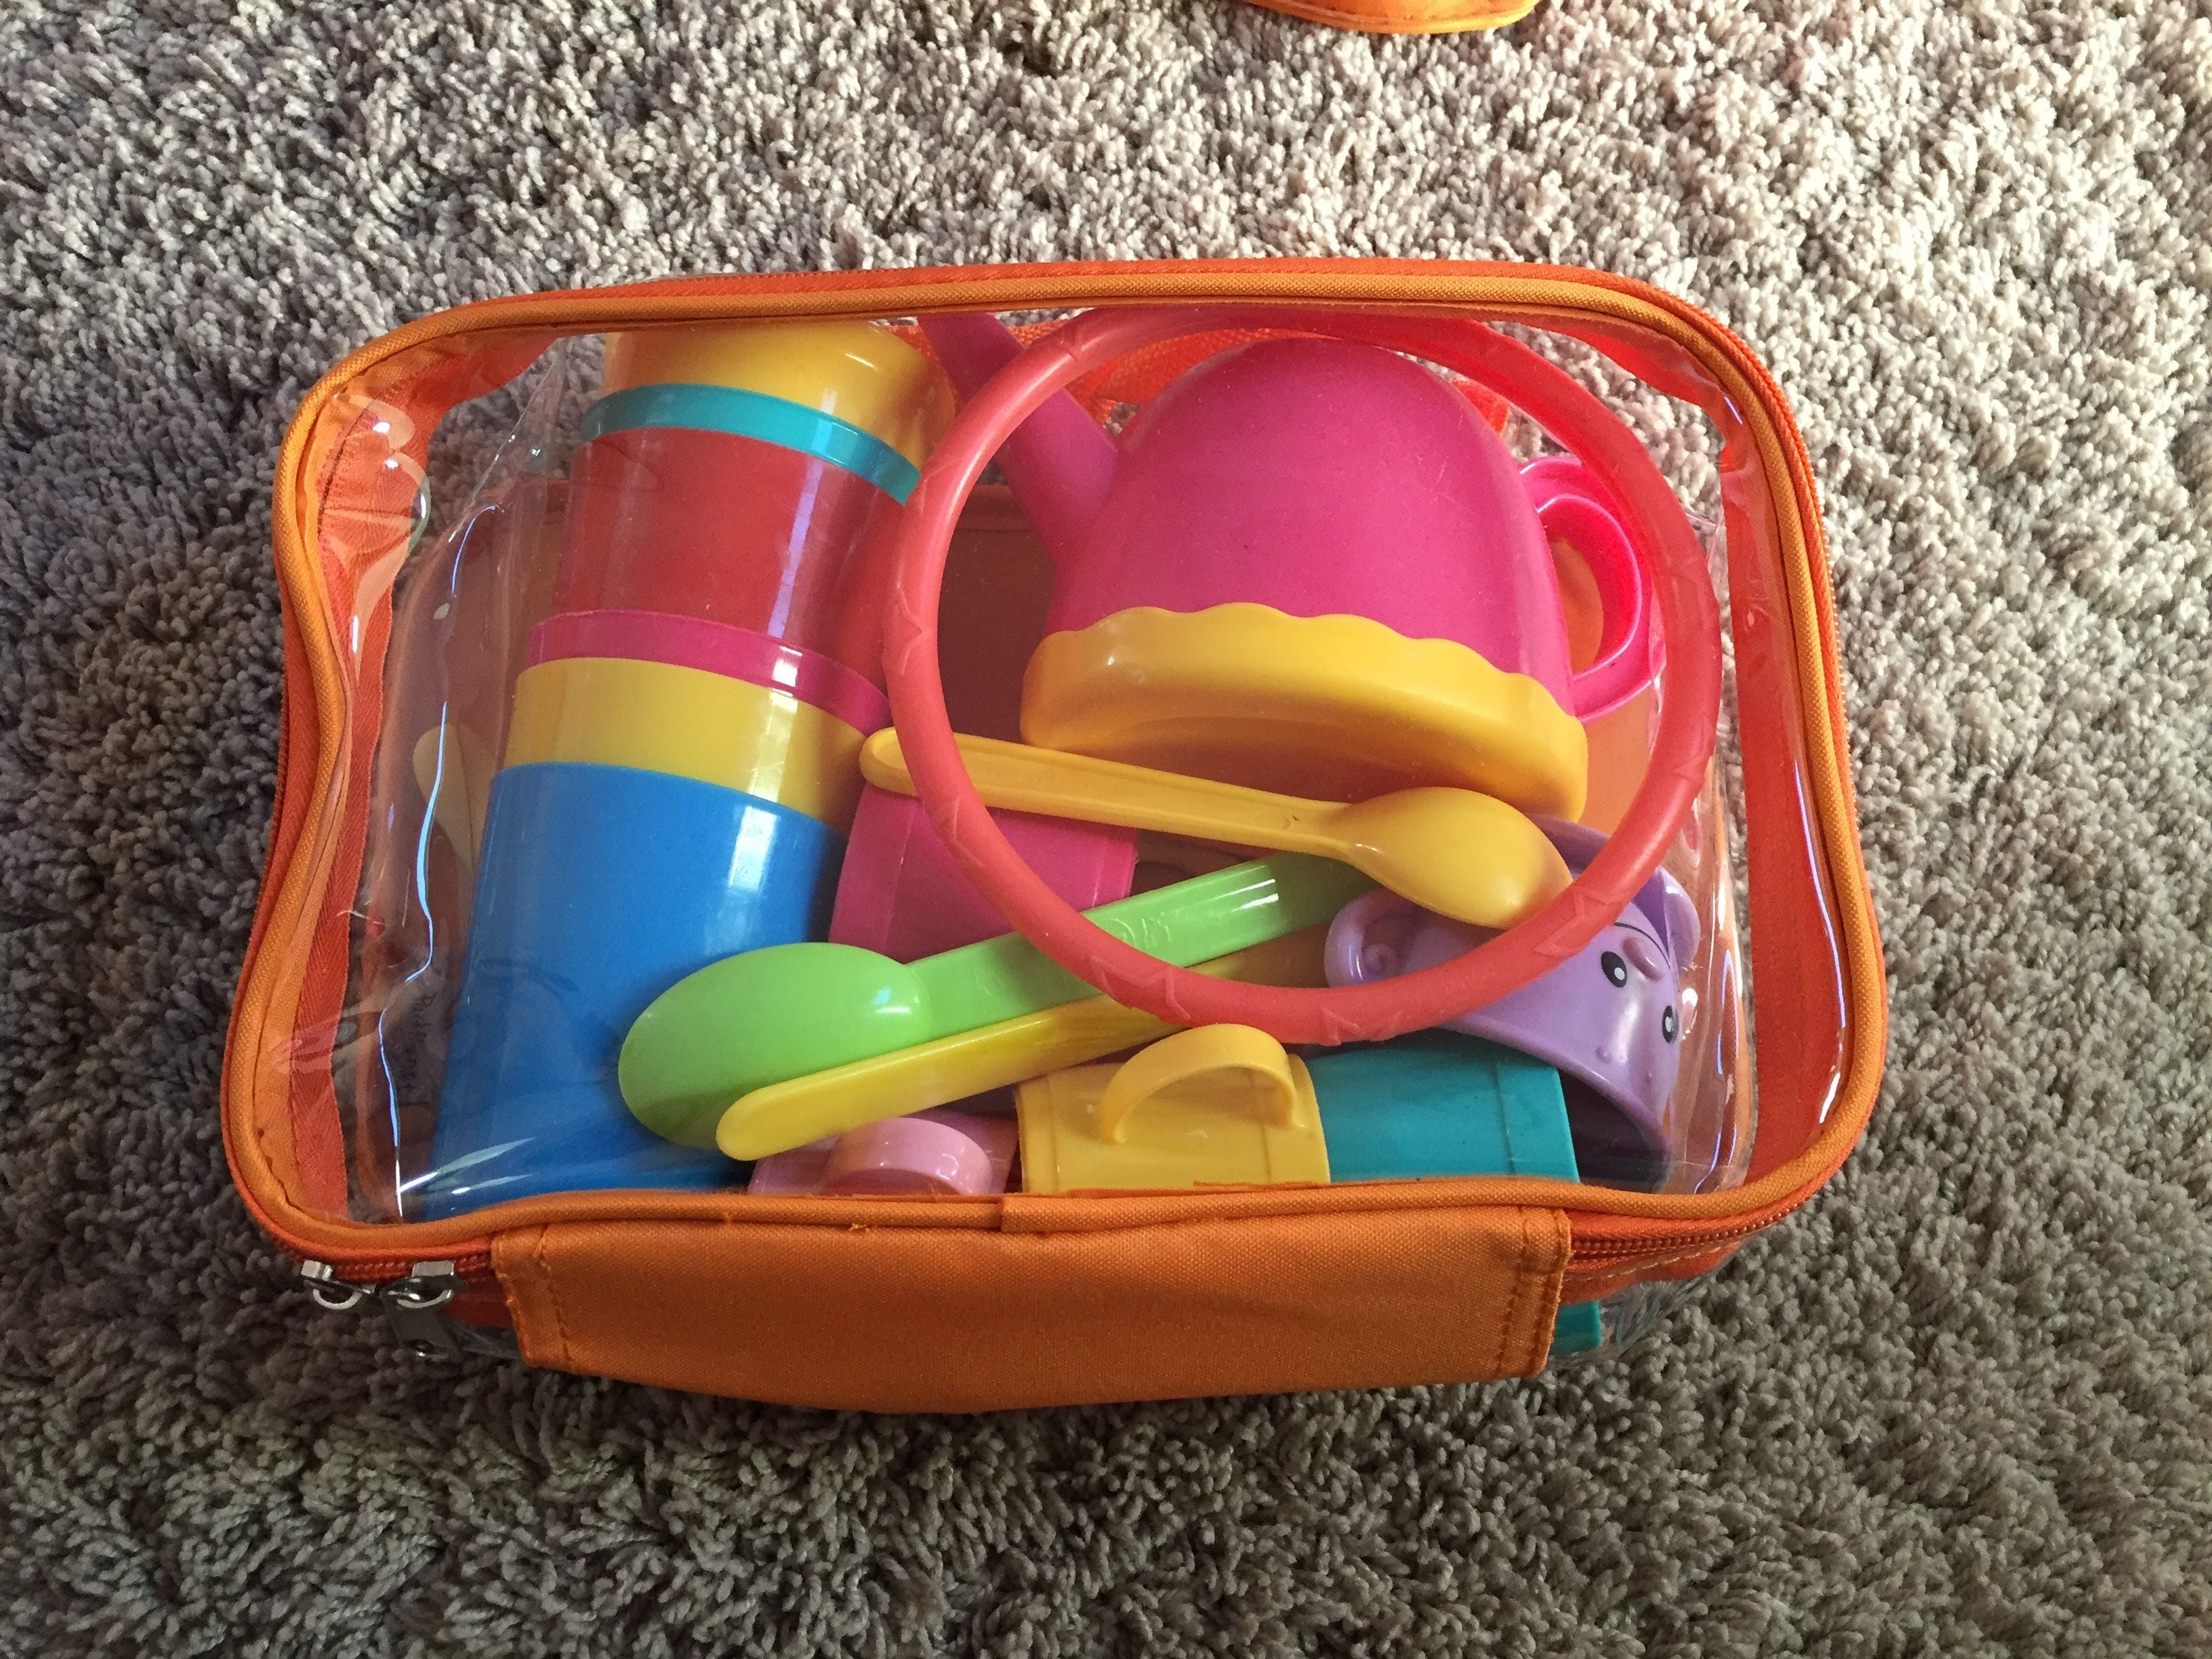 kids toys organized in a small orange cube